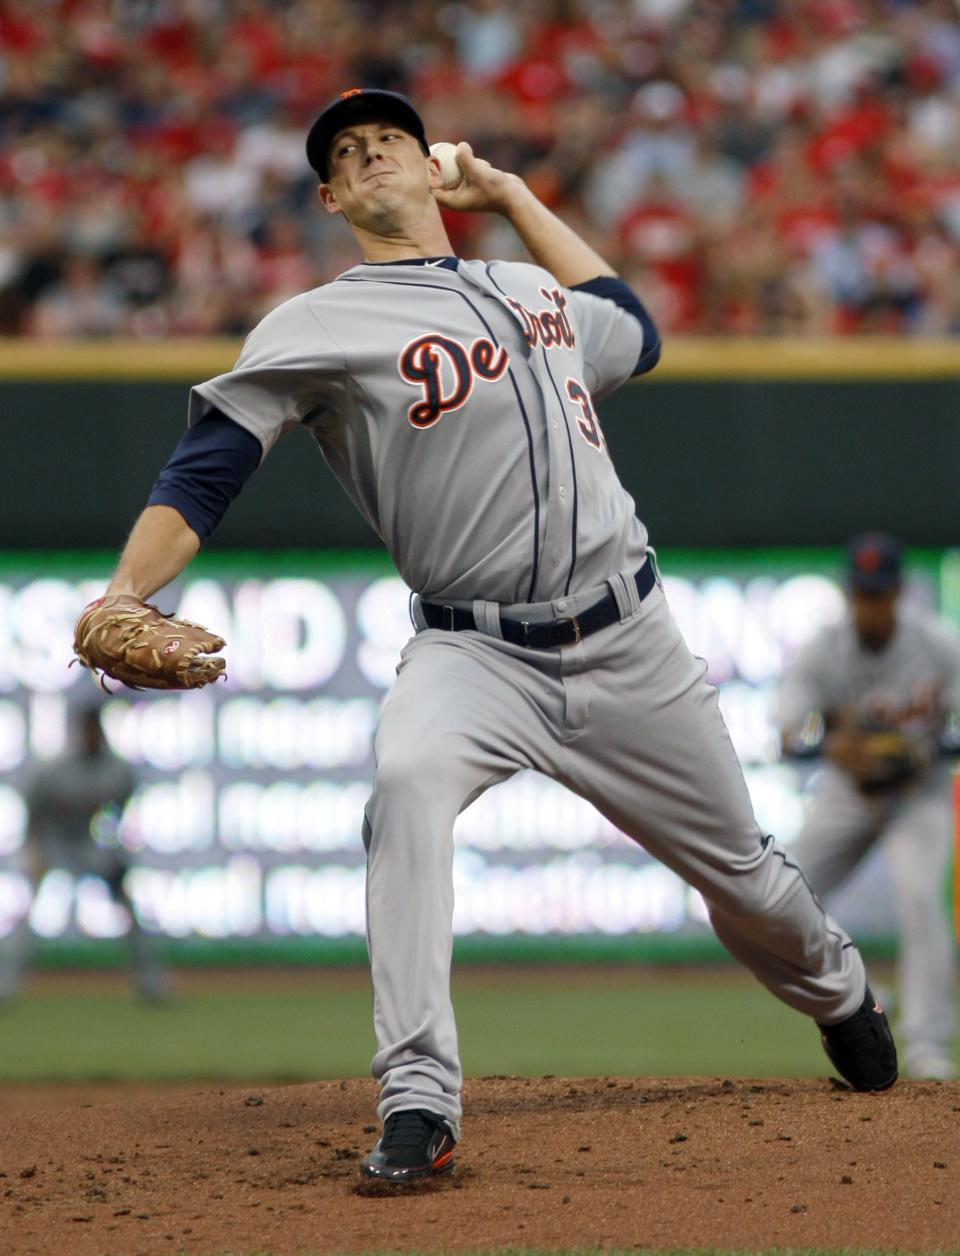 Detroit Tigers starting pitcher Drew Smyly throws against the Cincinnati Reds in the first inning of a baseball game, Sunday, June 10, 2012, in Cincinnati. (AP Photo/David Kohl)